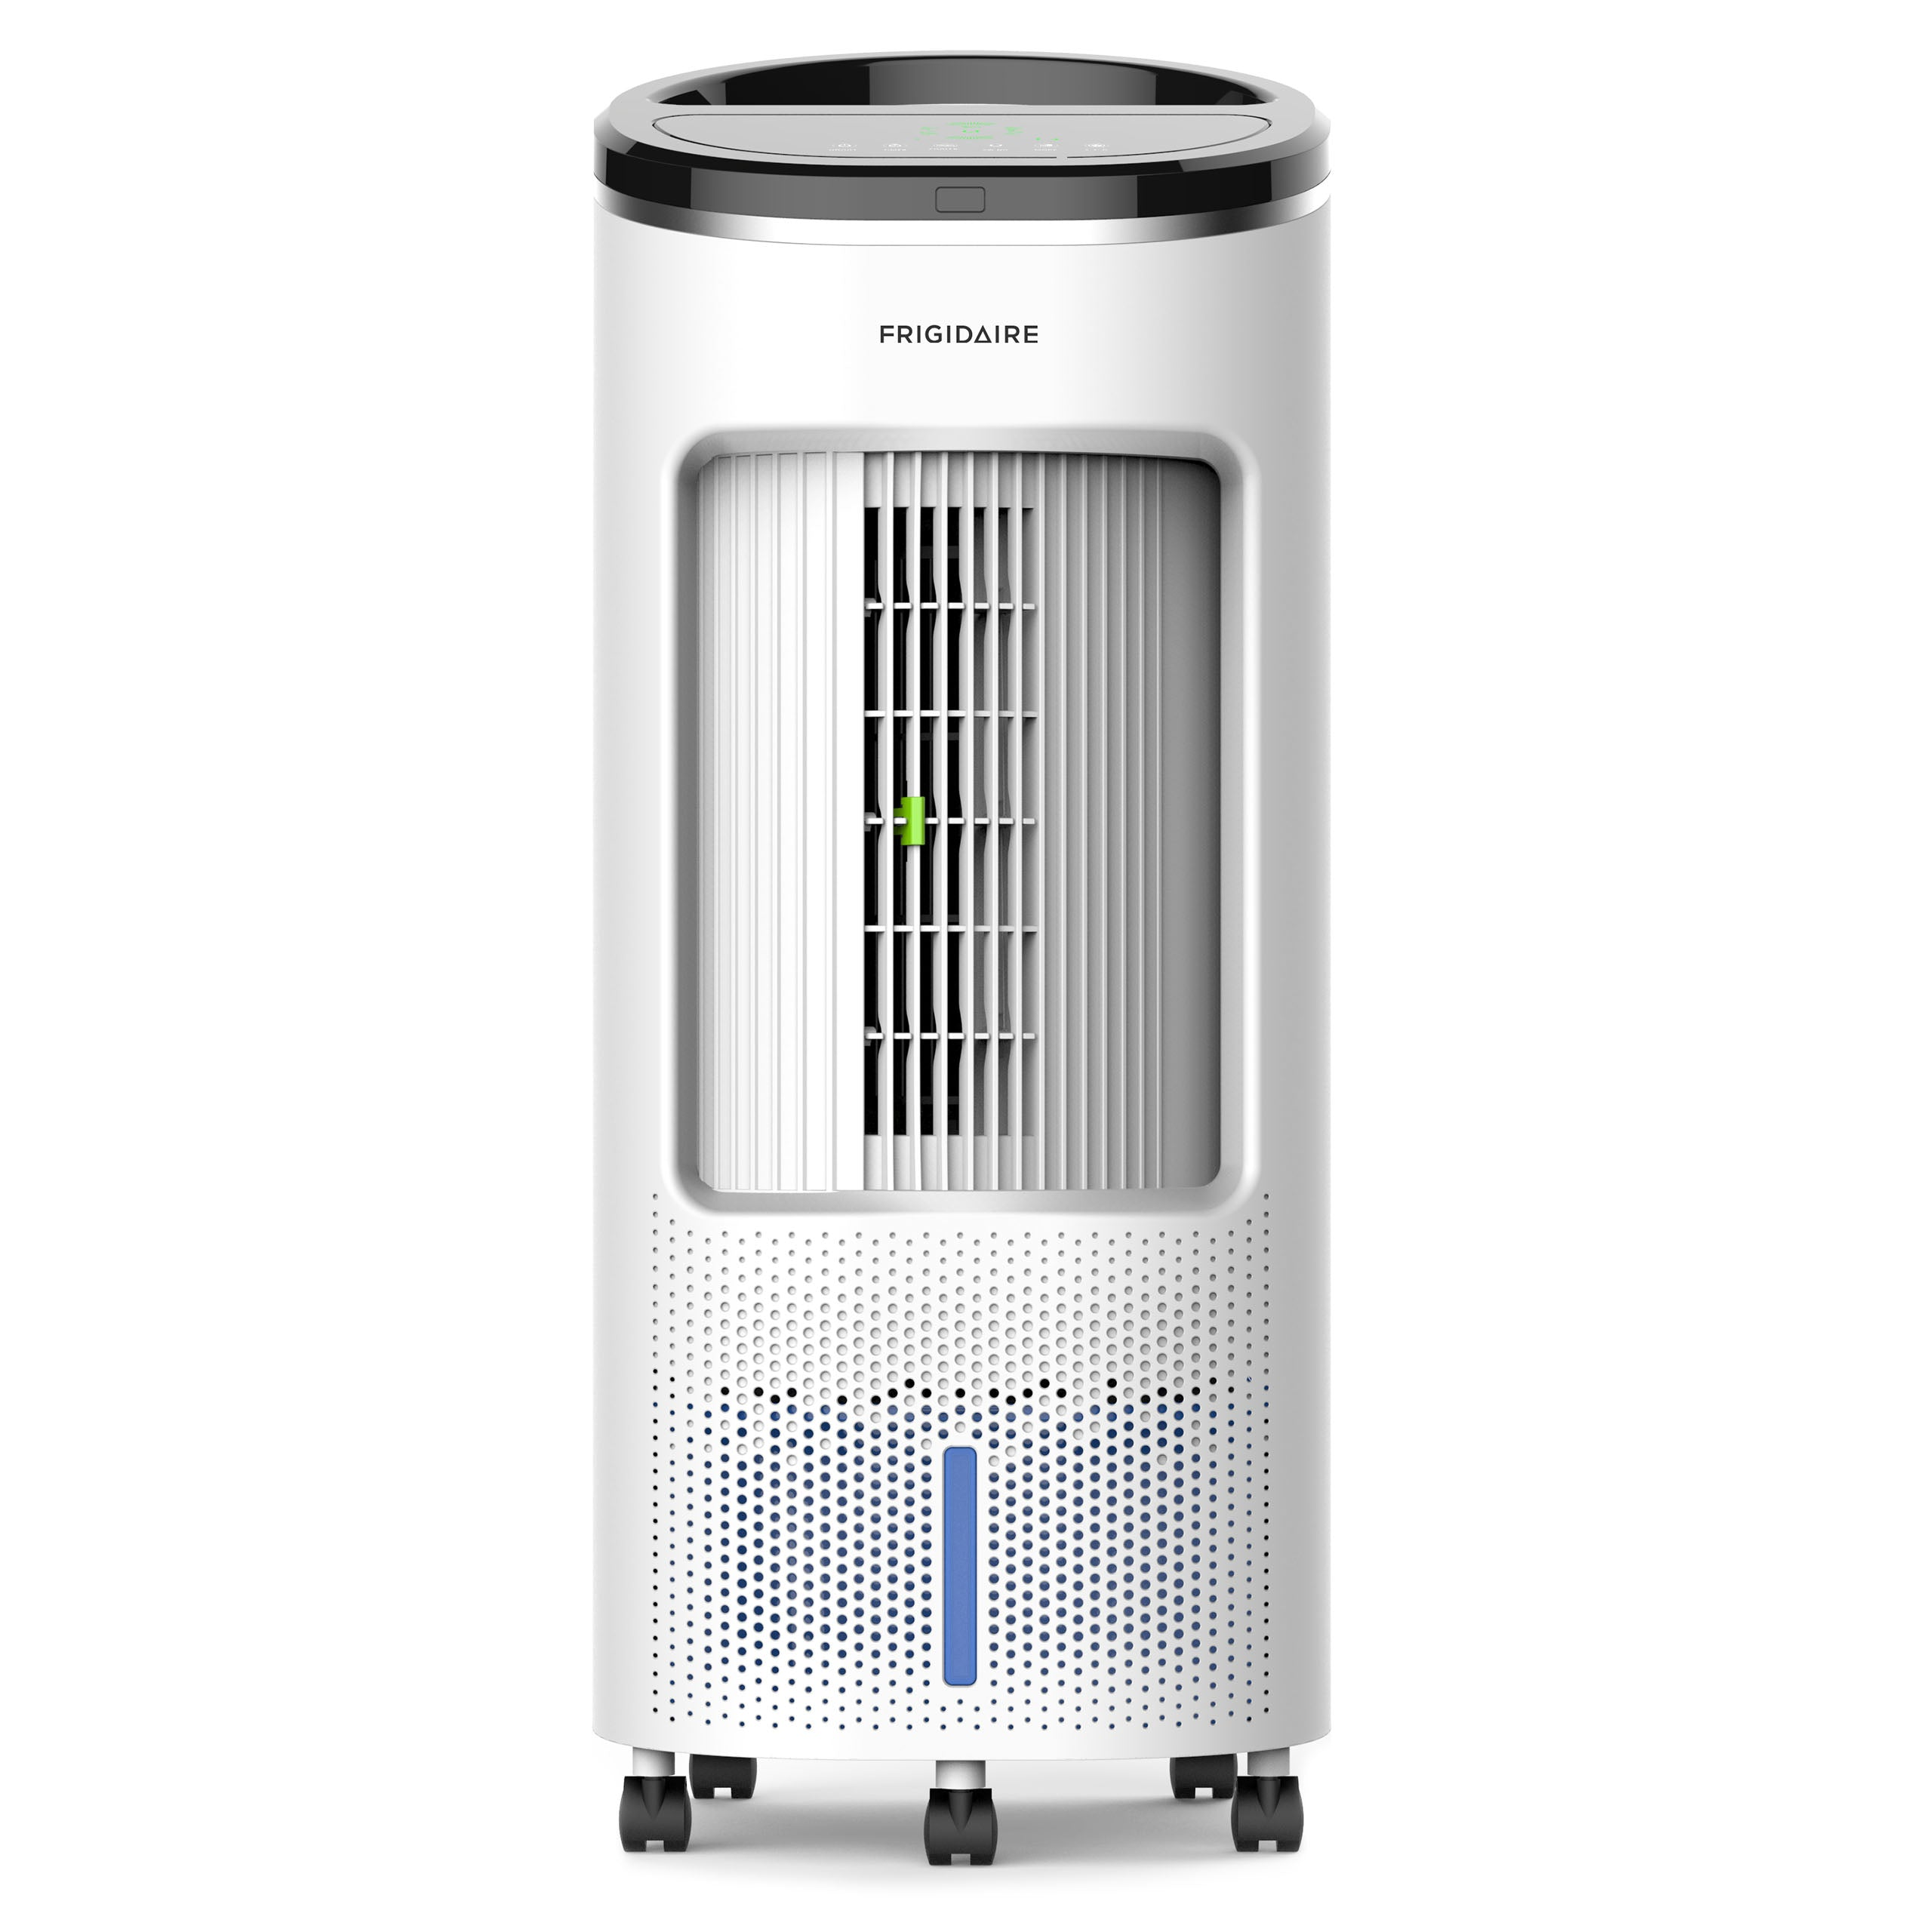 Evaporative Coolers Vs Portable Ac Units What Is Right For You Newair